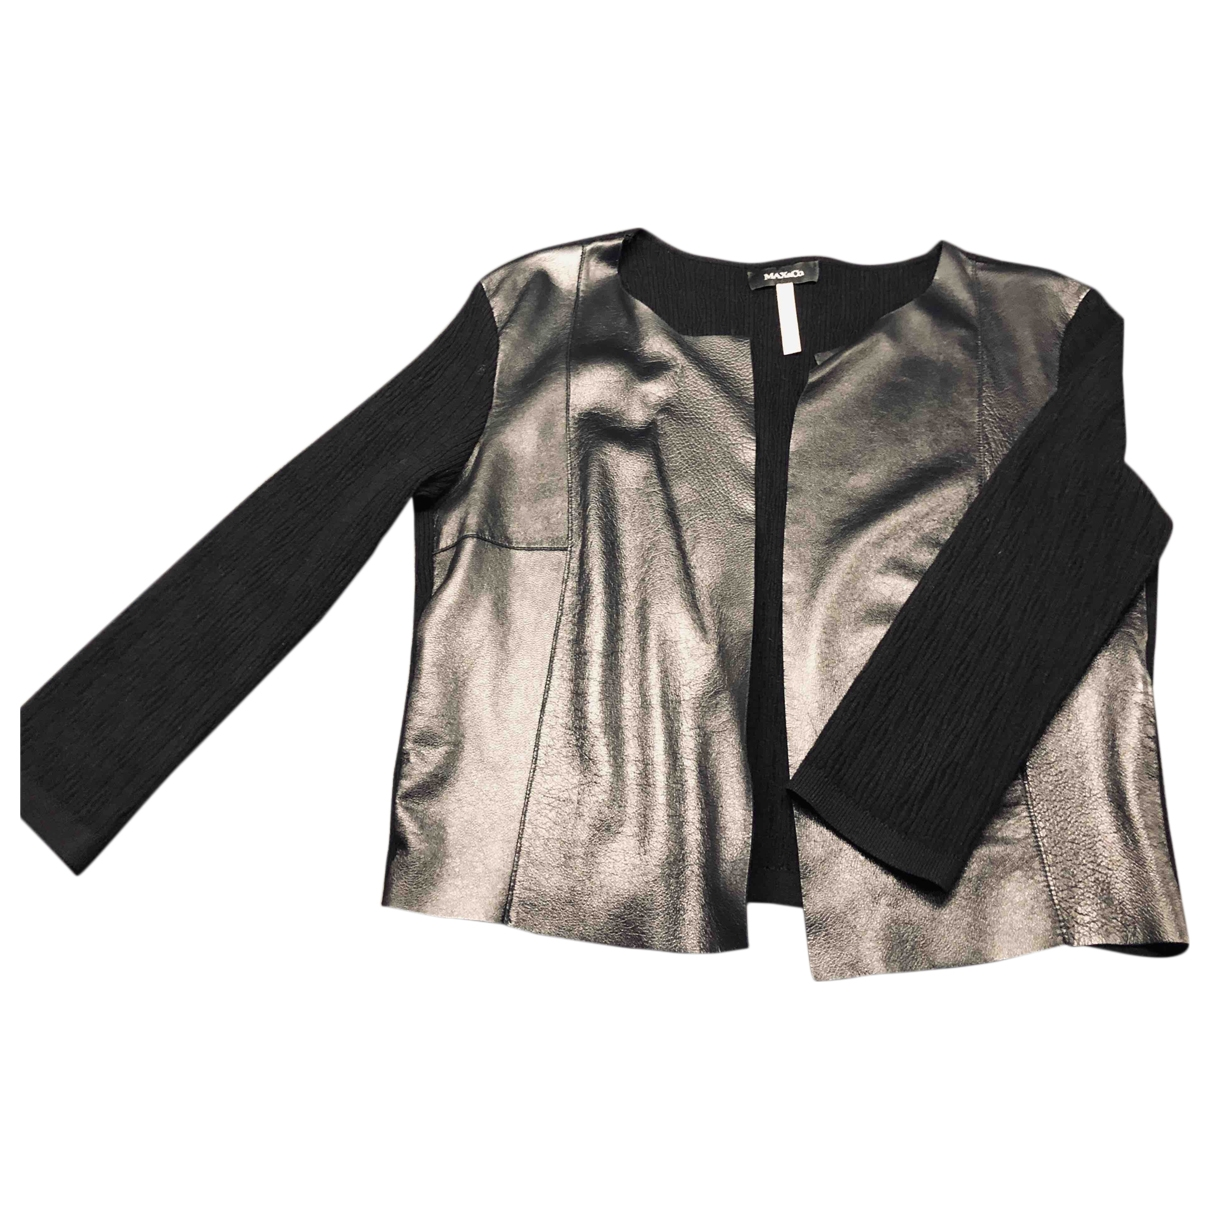 Max & Co \N Black Leather jacket for Women M International